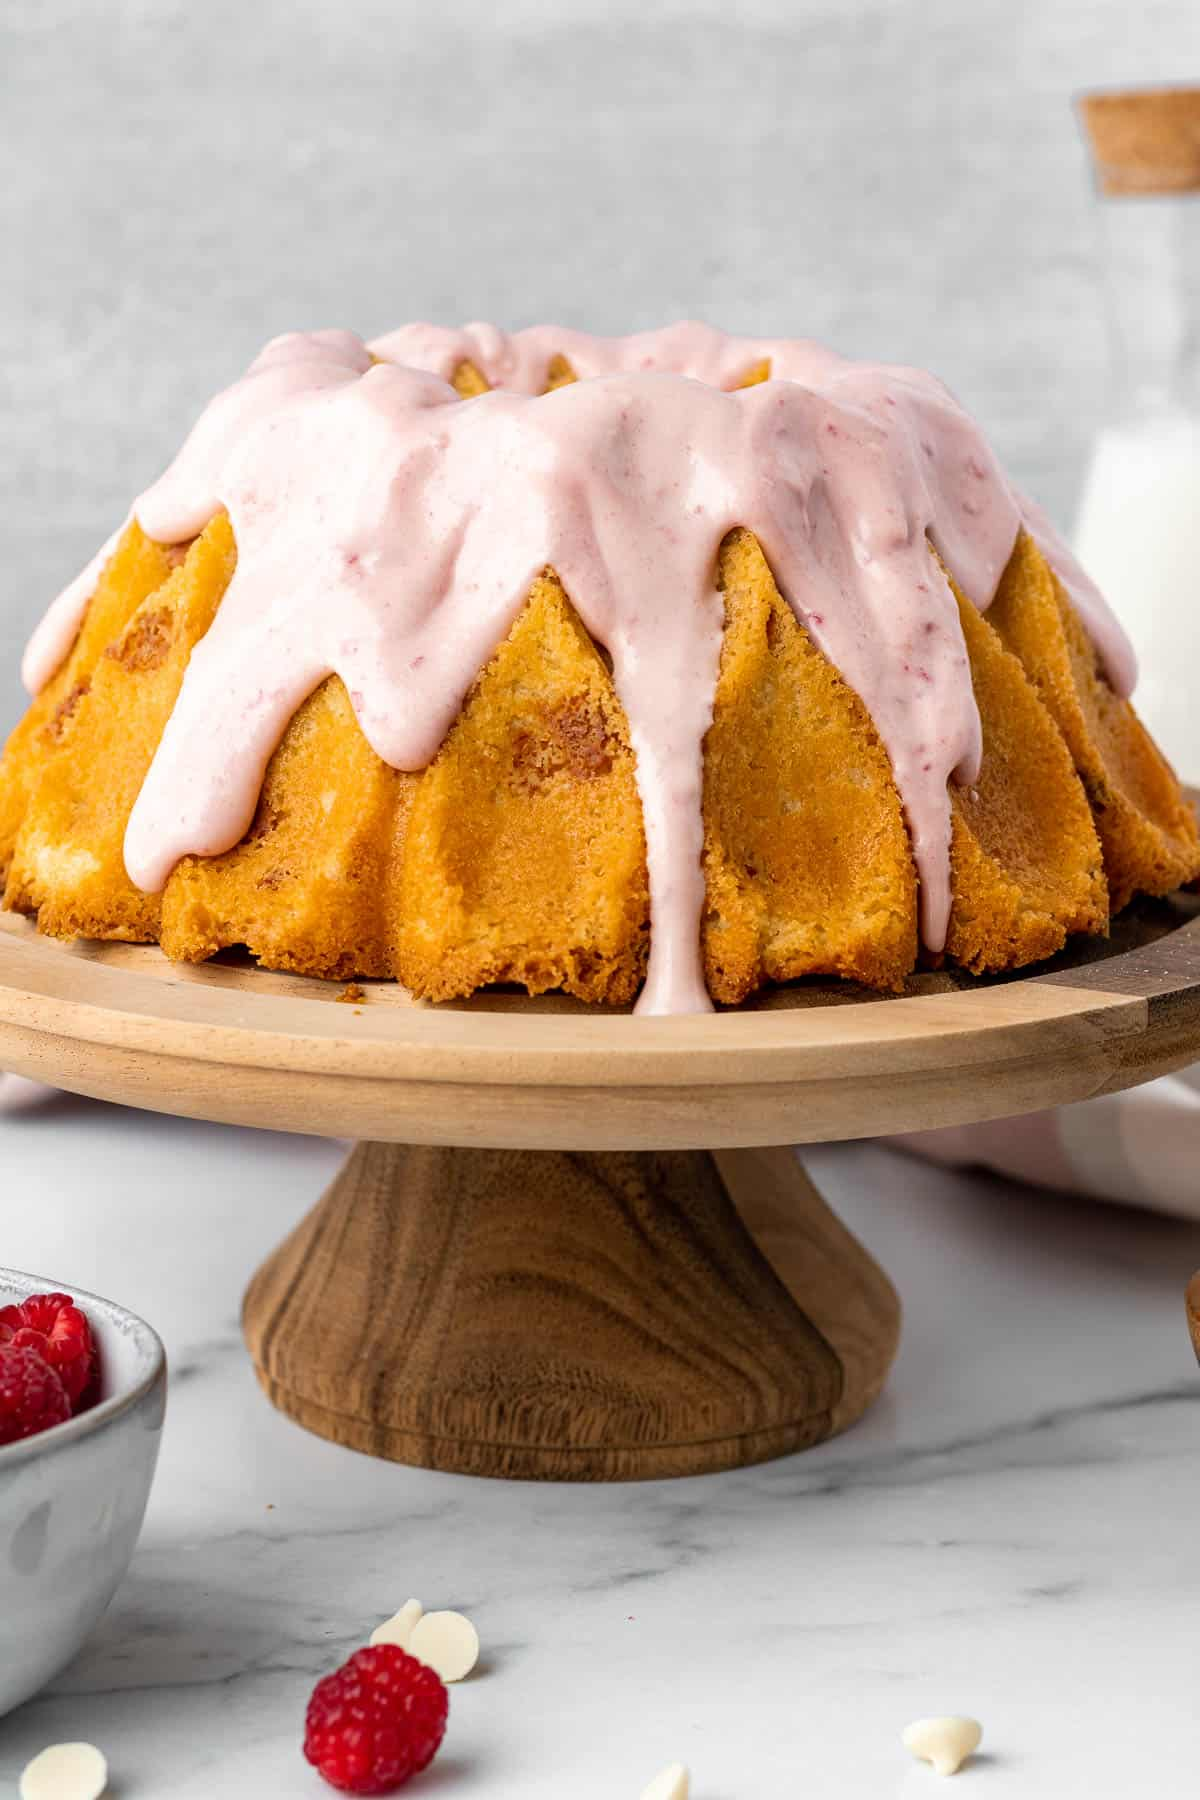 white chocolate raspberry bundt cake on a wood pedestal with bowl of raspberries in foreground and glass of milk in background